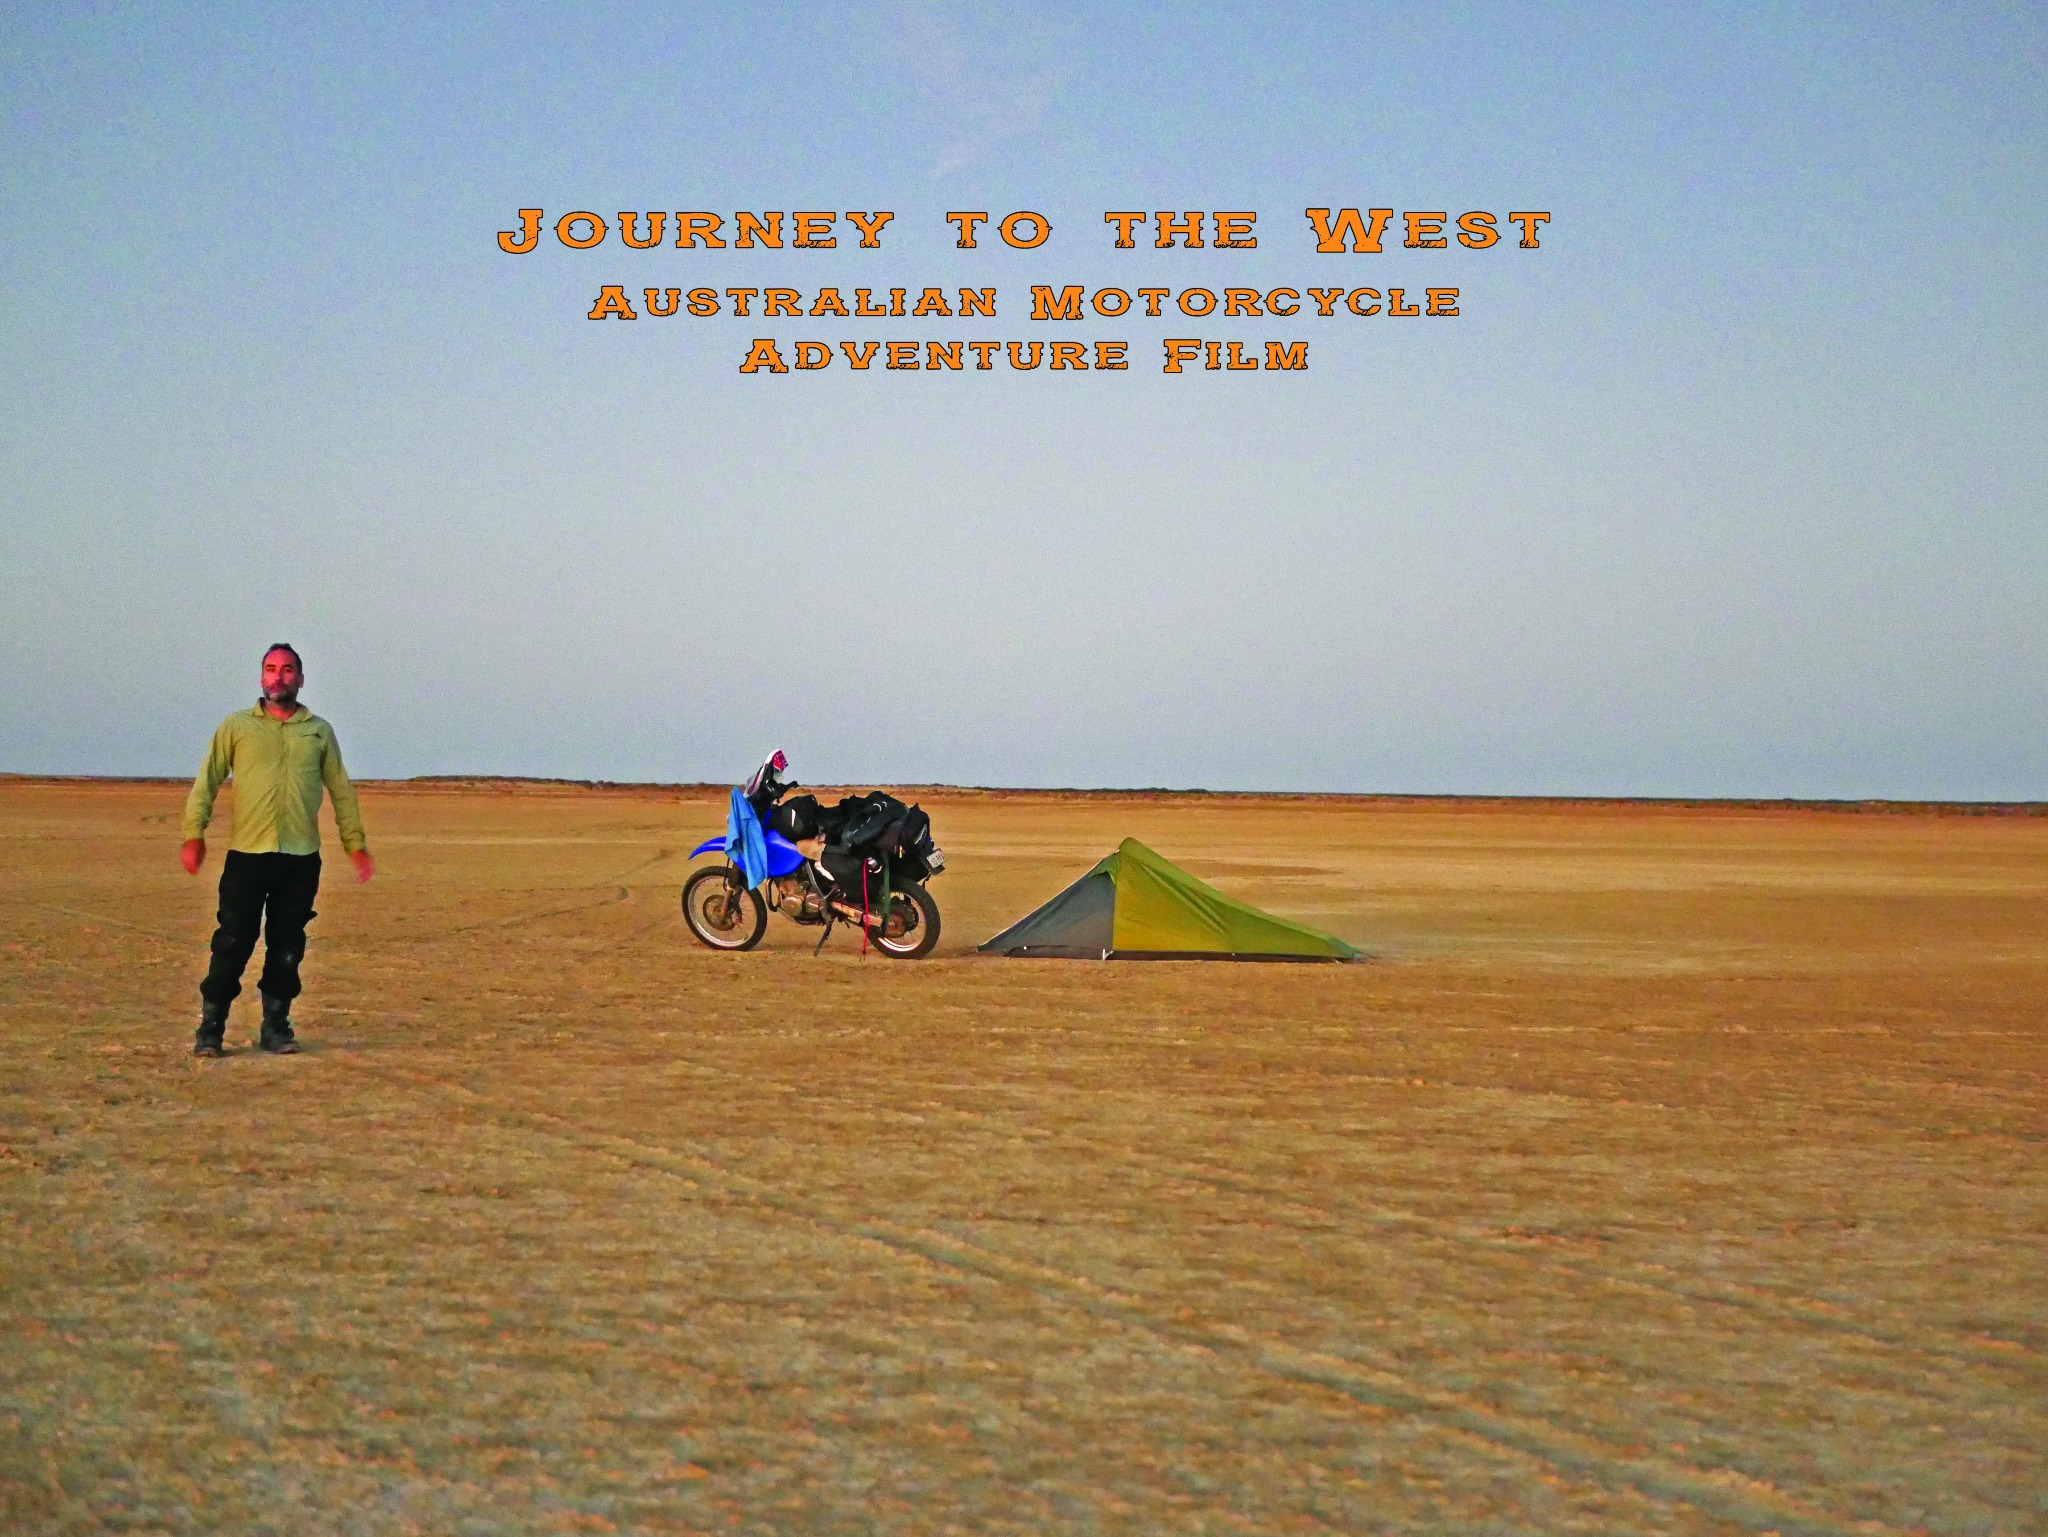 Audio Book of Journey to the West - Australian Motorcycle Adventure